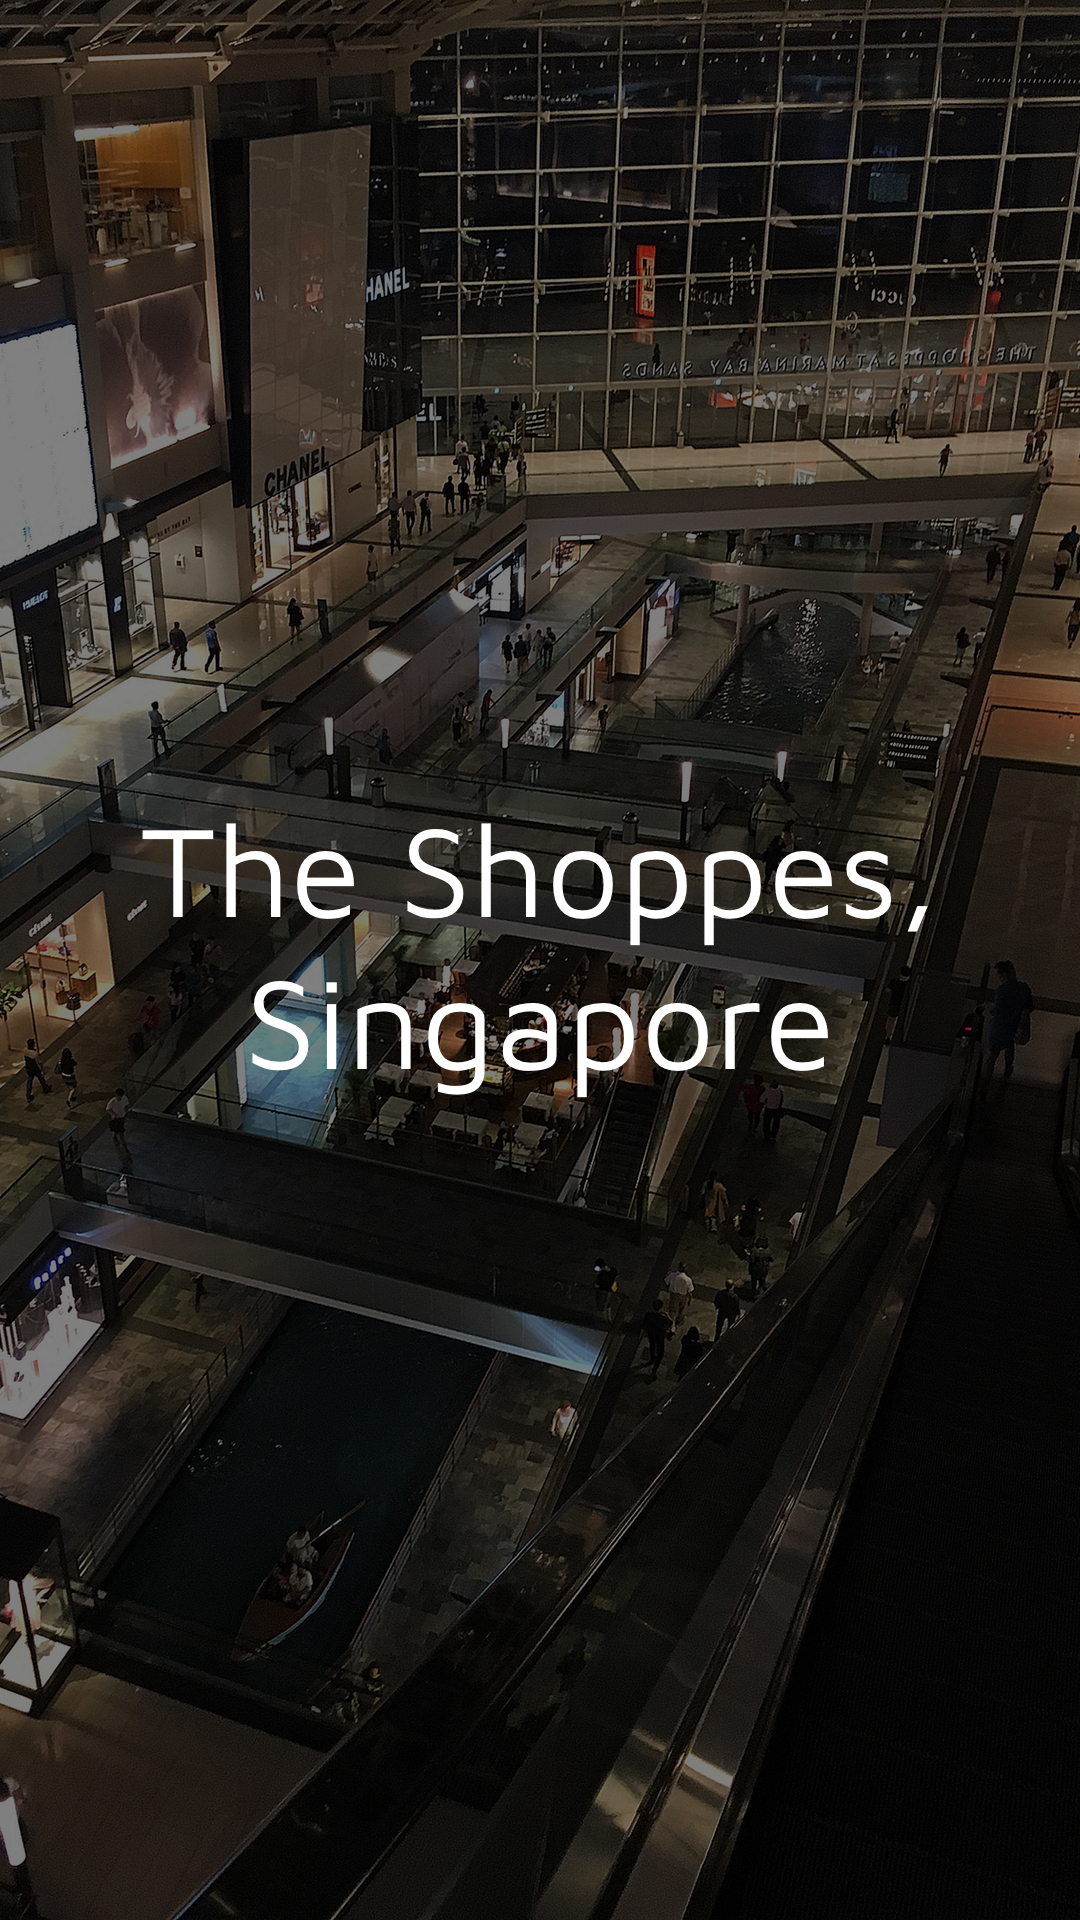 The Shoppes Singapore 1080x1920 Dark